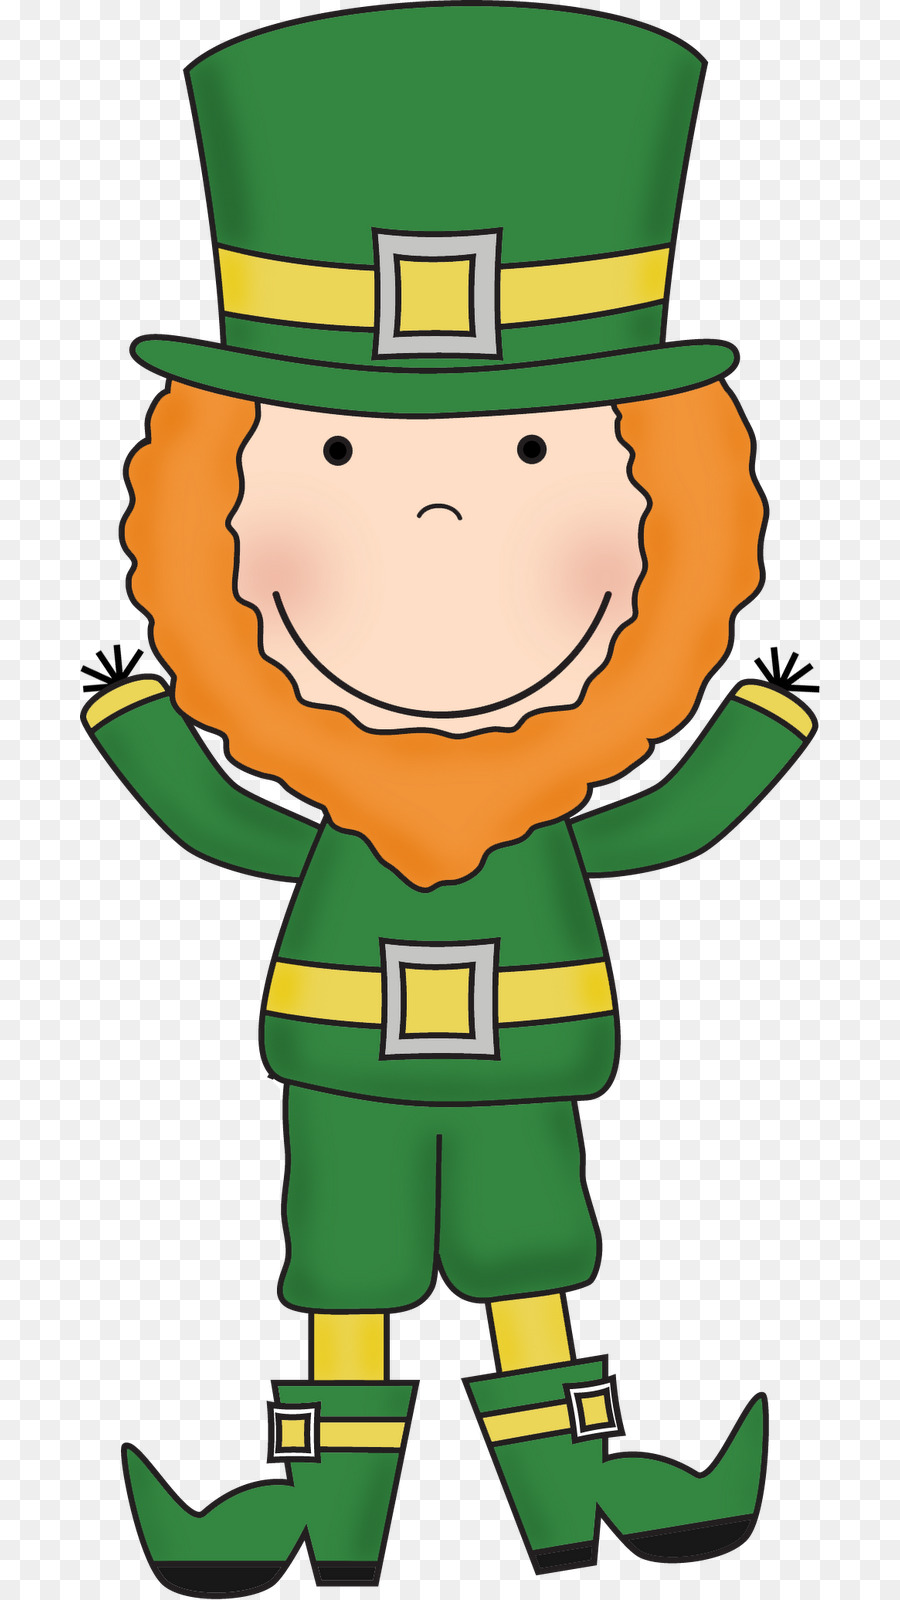 leprechaun free content saint patrick s day clip art cute rh kisspng com free irish leprechaun clipart free animated leprechaun clipart